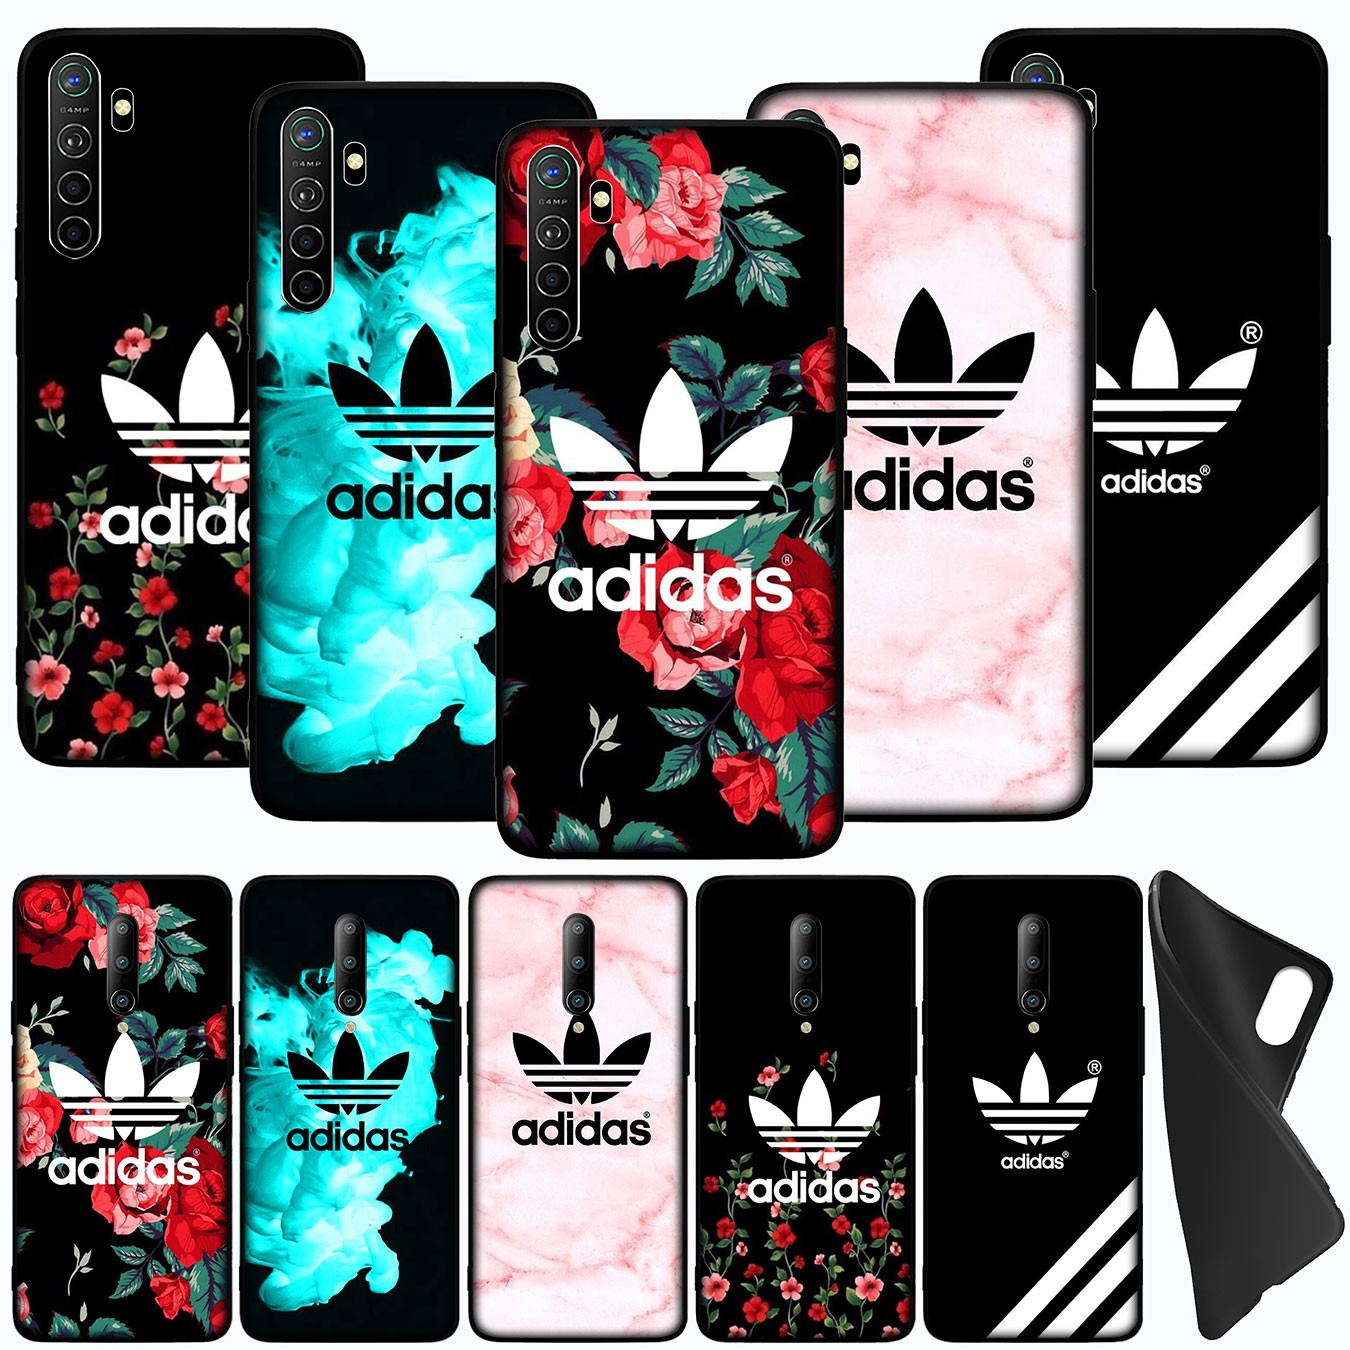 Ốp Điện Thoại Silicon Mềm In Logo Adidas Cho Oppo Realme C17 C15 C12 C11 C3 C2 A5 7 7i 2 Narzo 20 Pro 6i